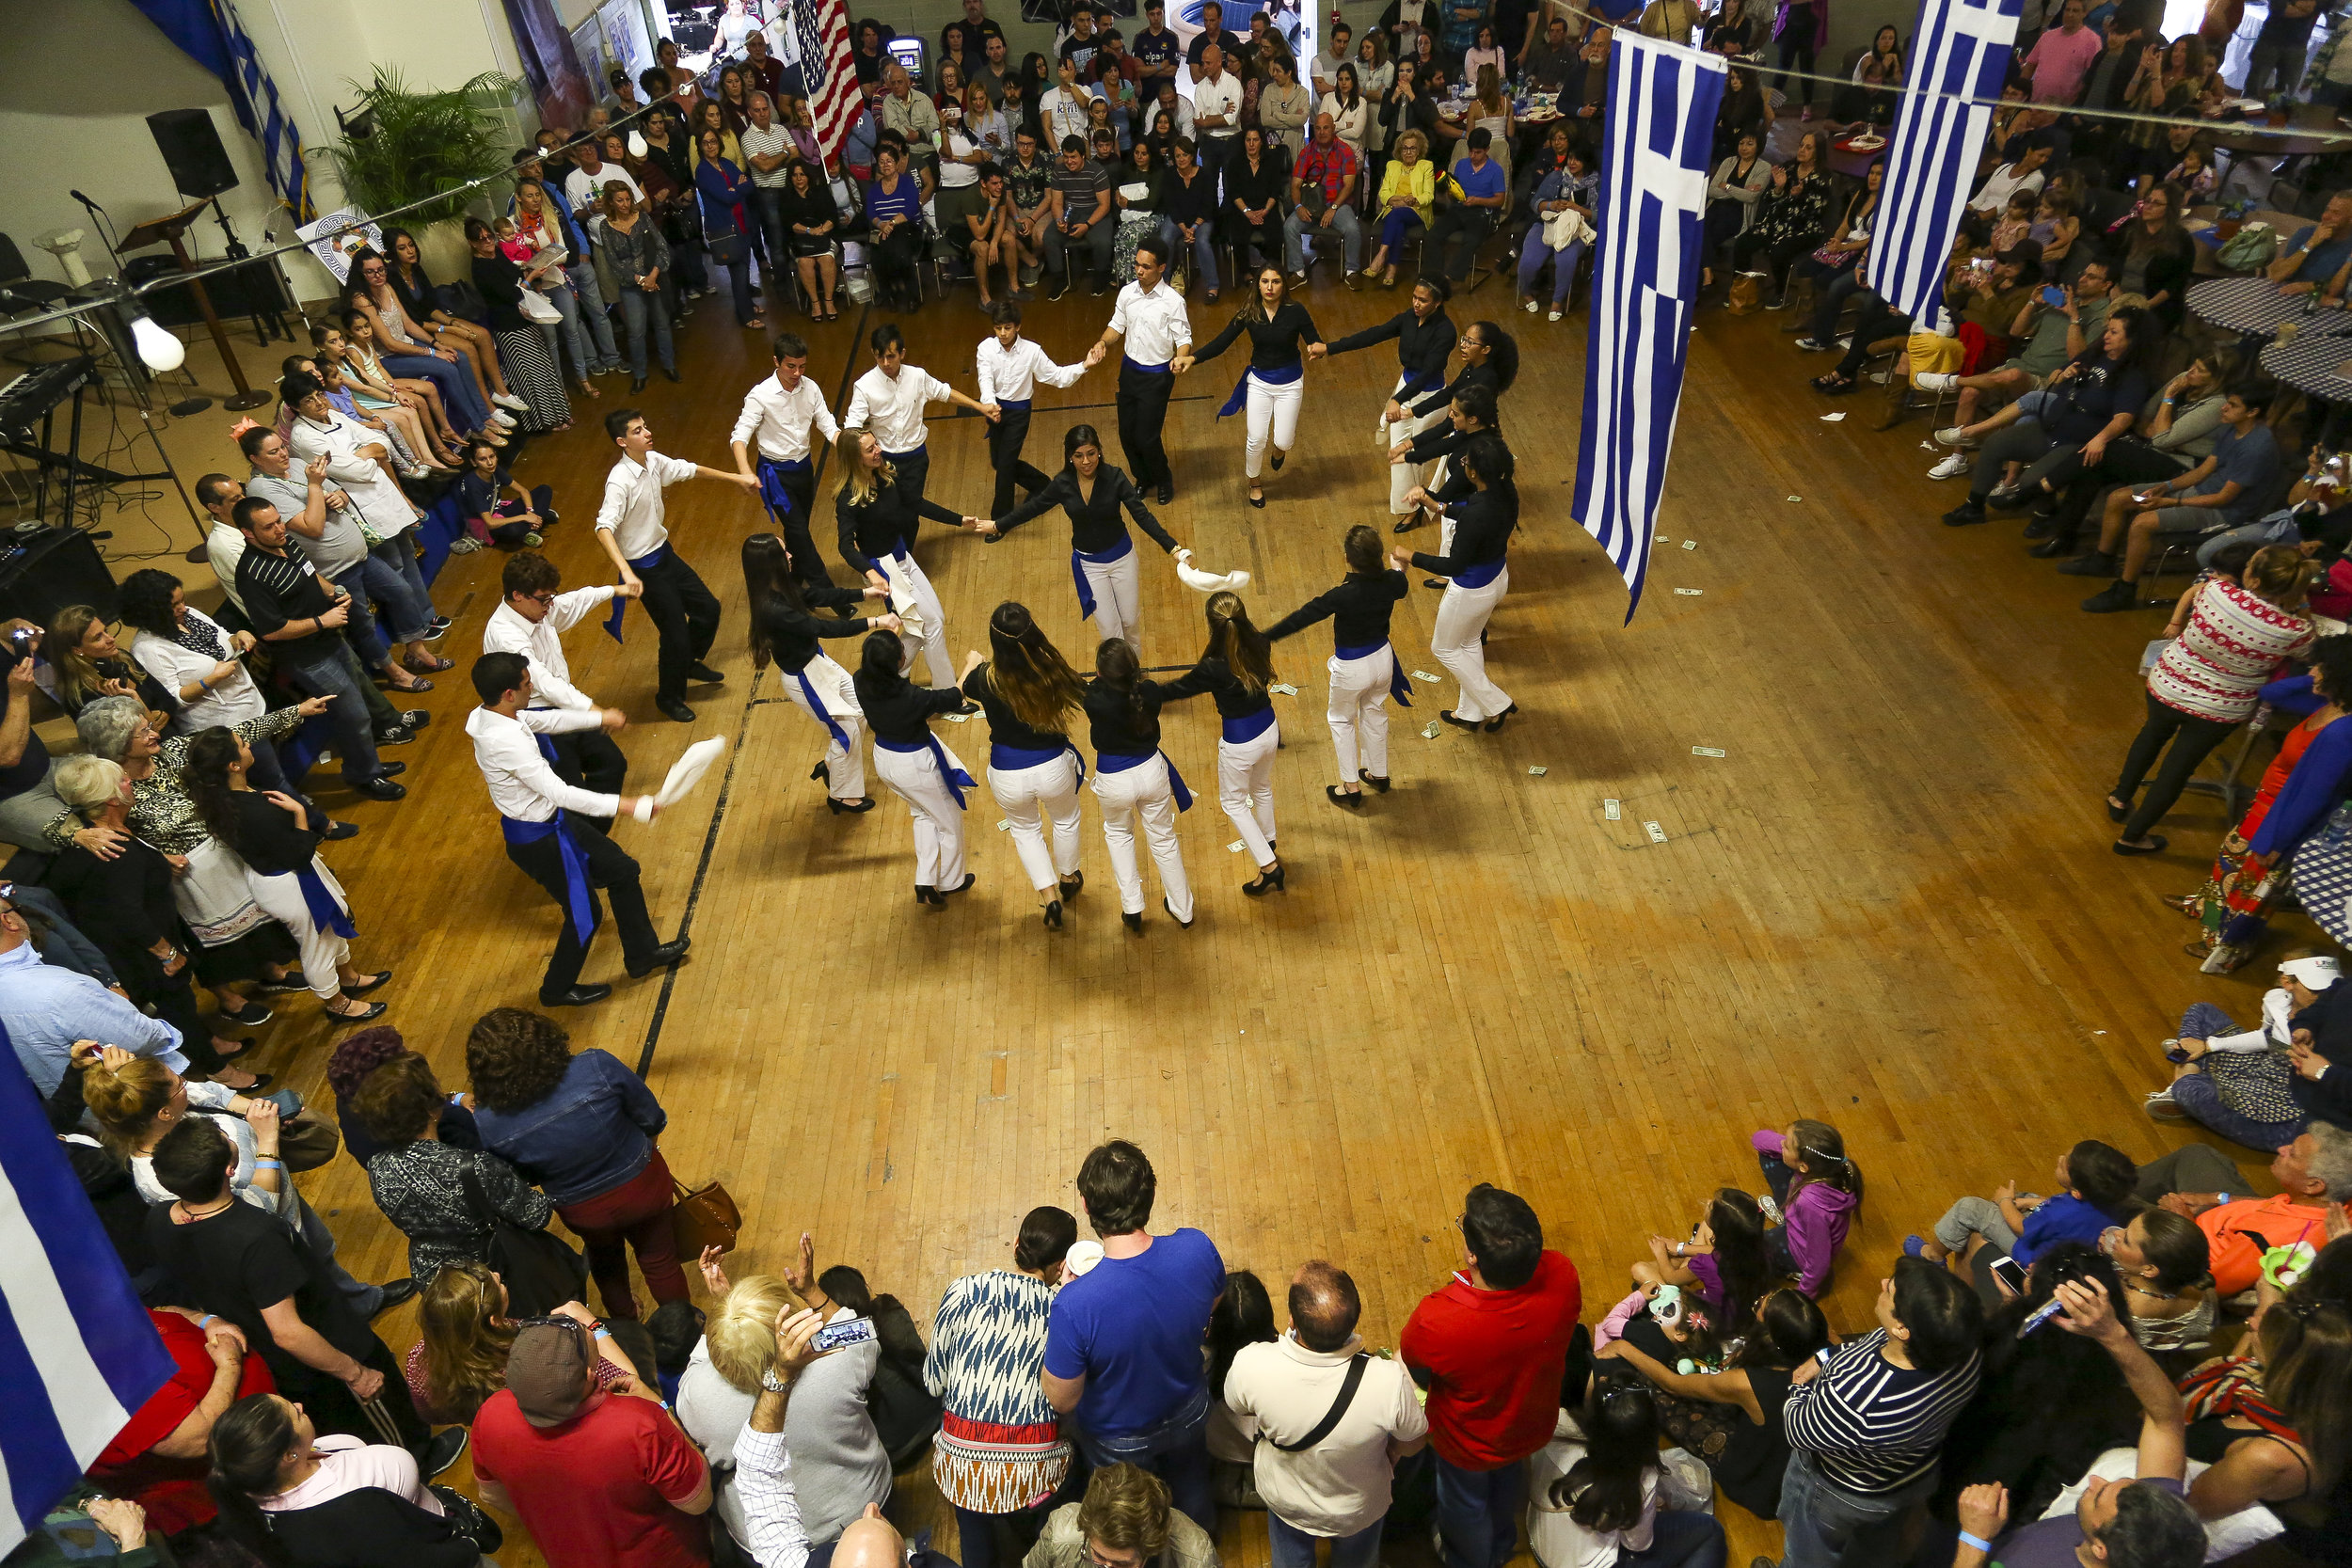 A group of greek dancers perform during Saint Sophia's 38th annual Greek Festival in Coral Way on Sunday, February 28, 2016. The festival featured a children's dance troupe, a variety of booths and cooking demonstrations among other events.